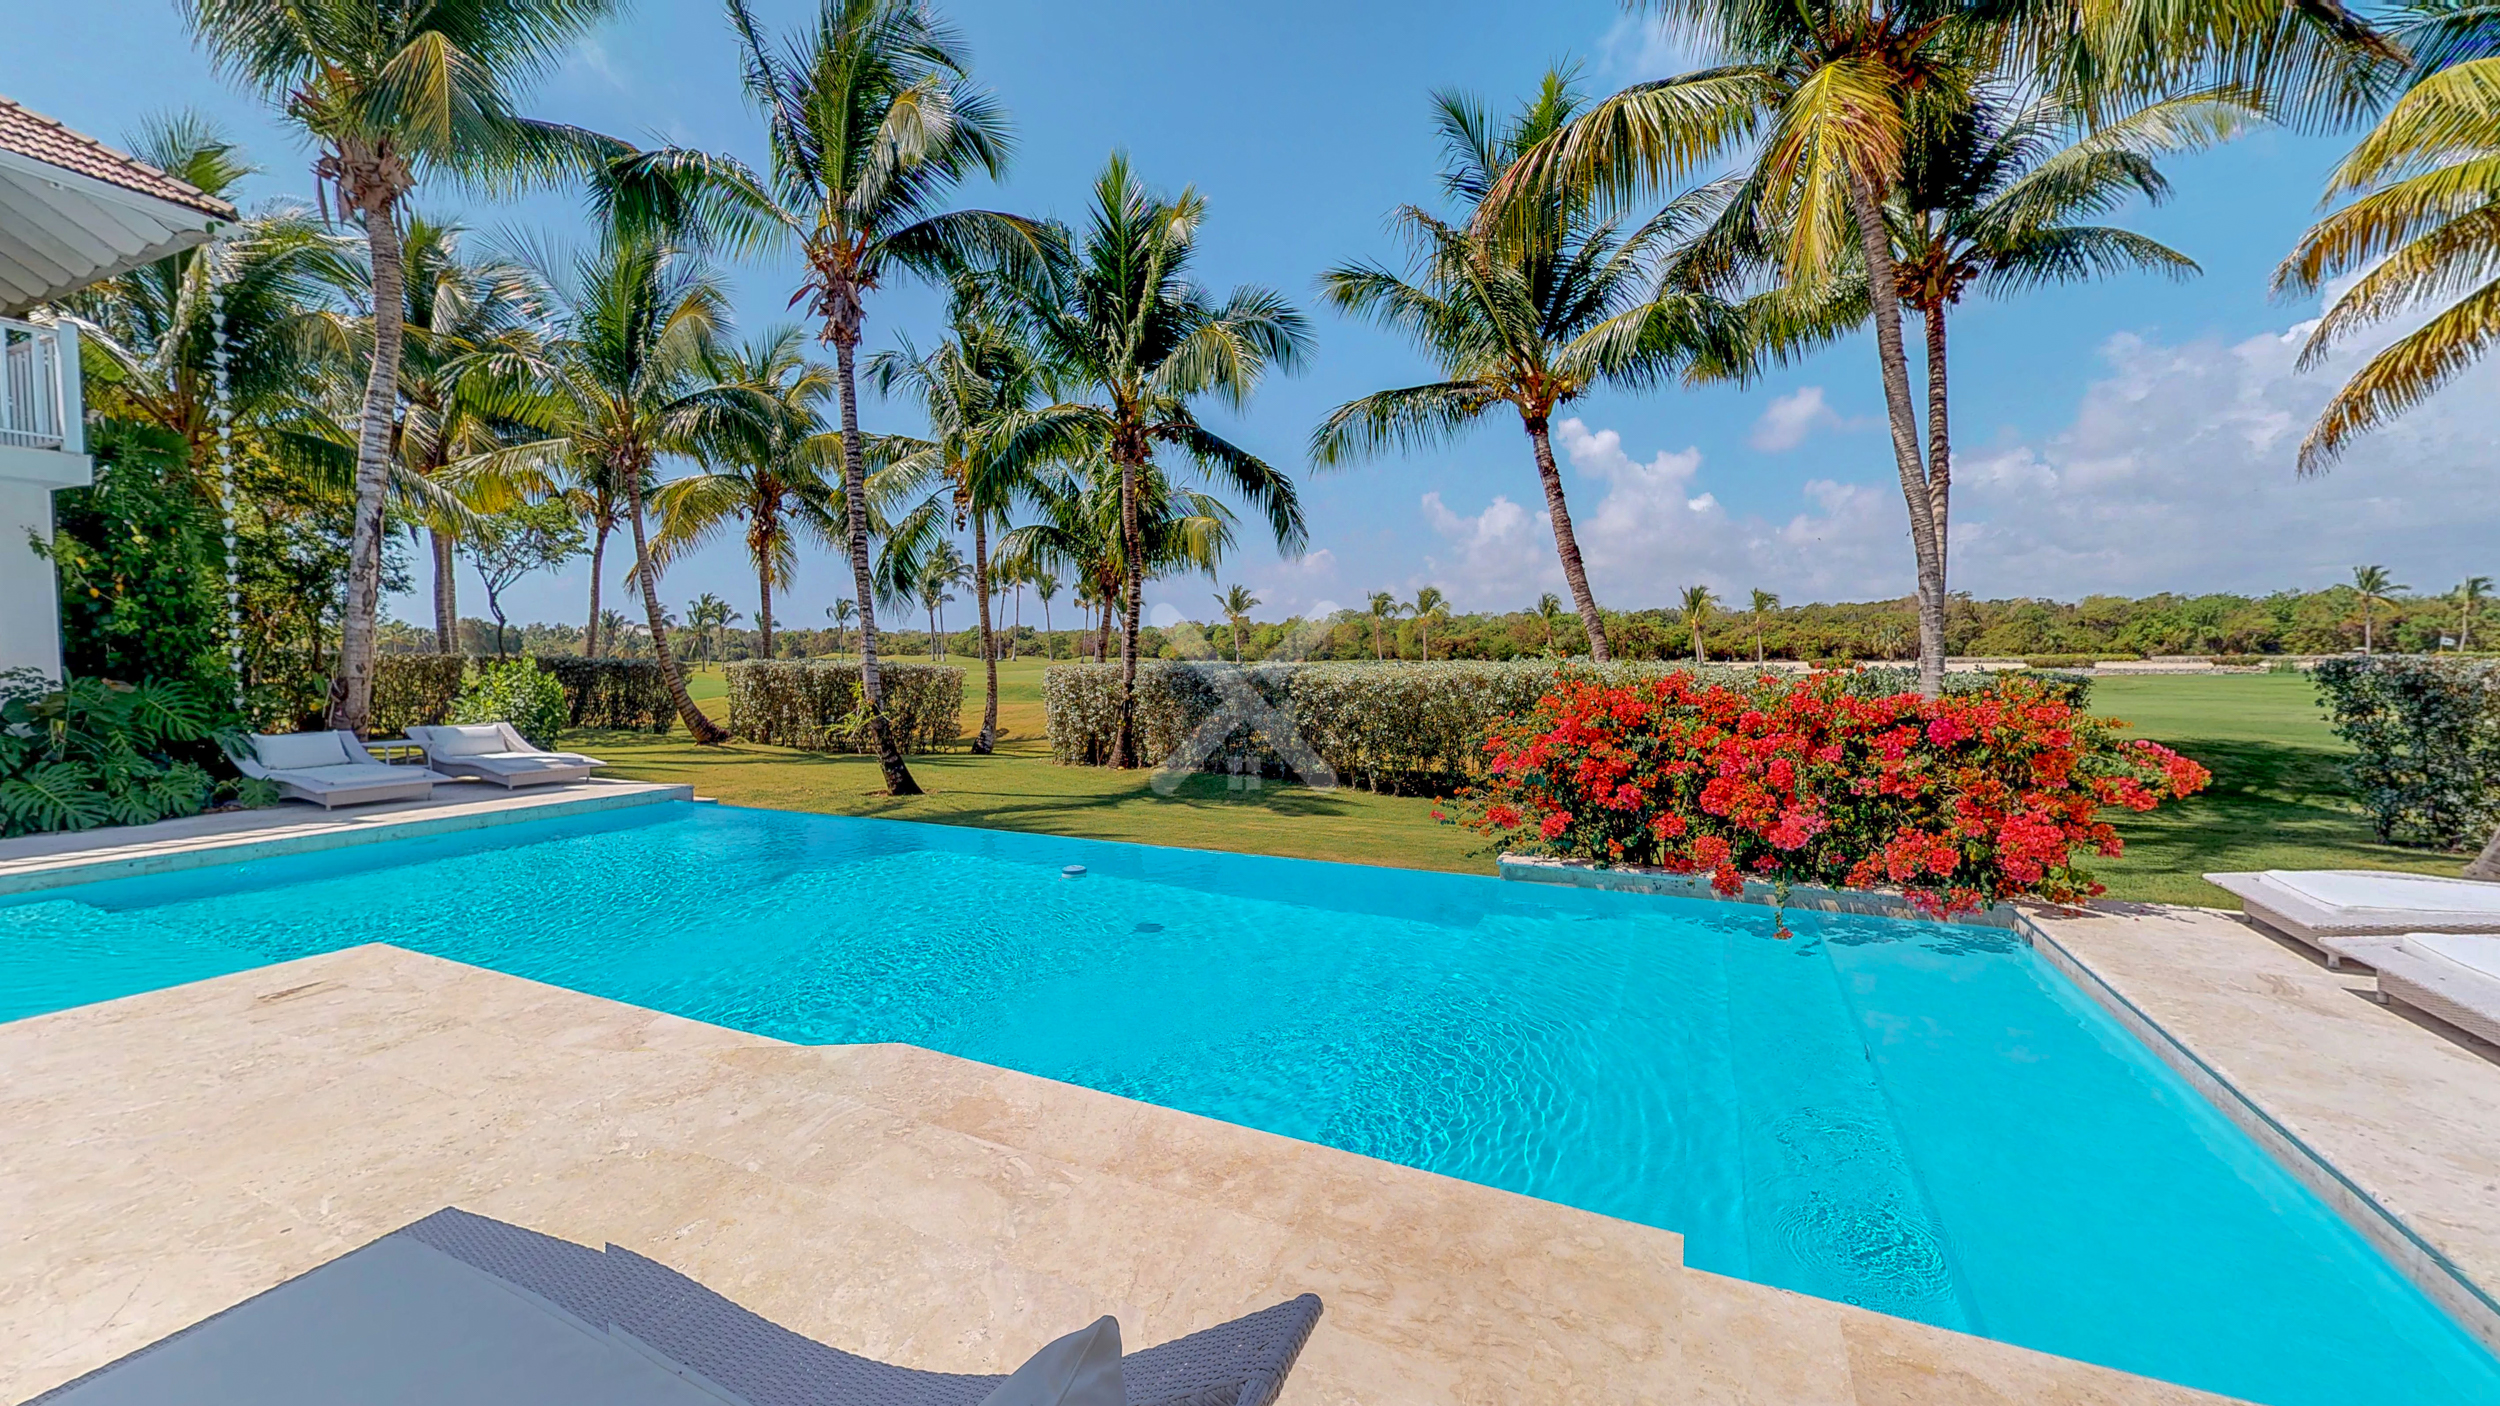 Spectacular and Luxurious For Rent Villa in Punta Cana